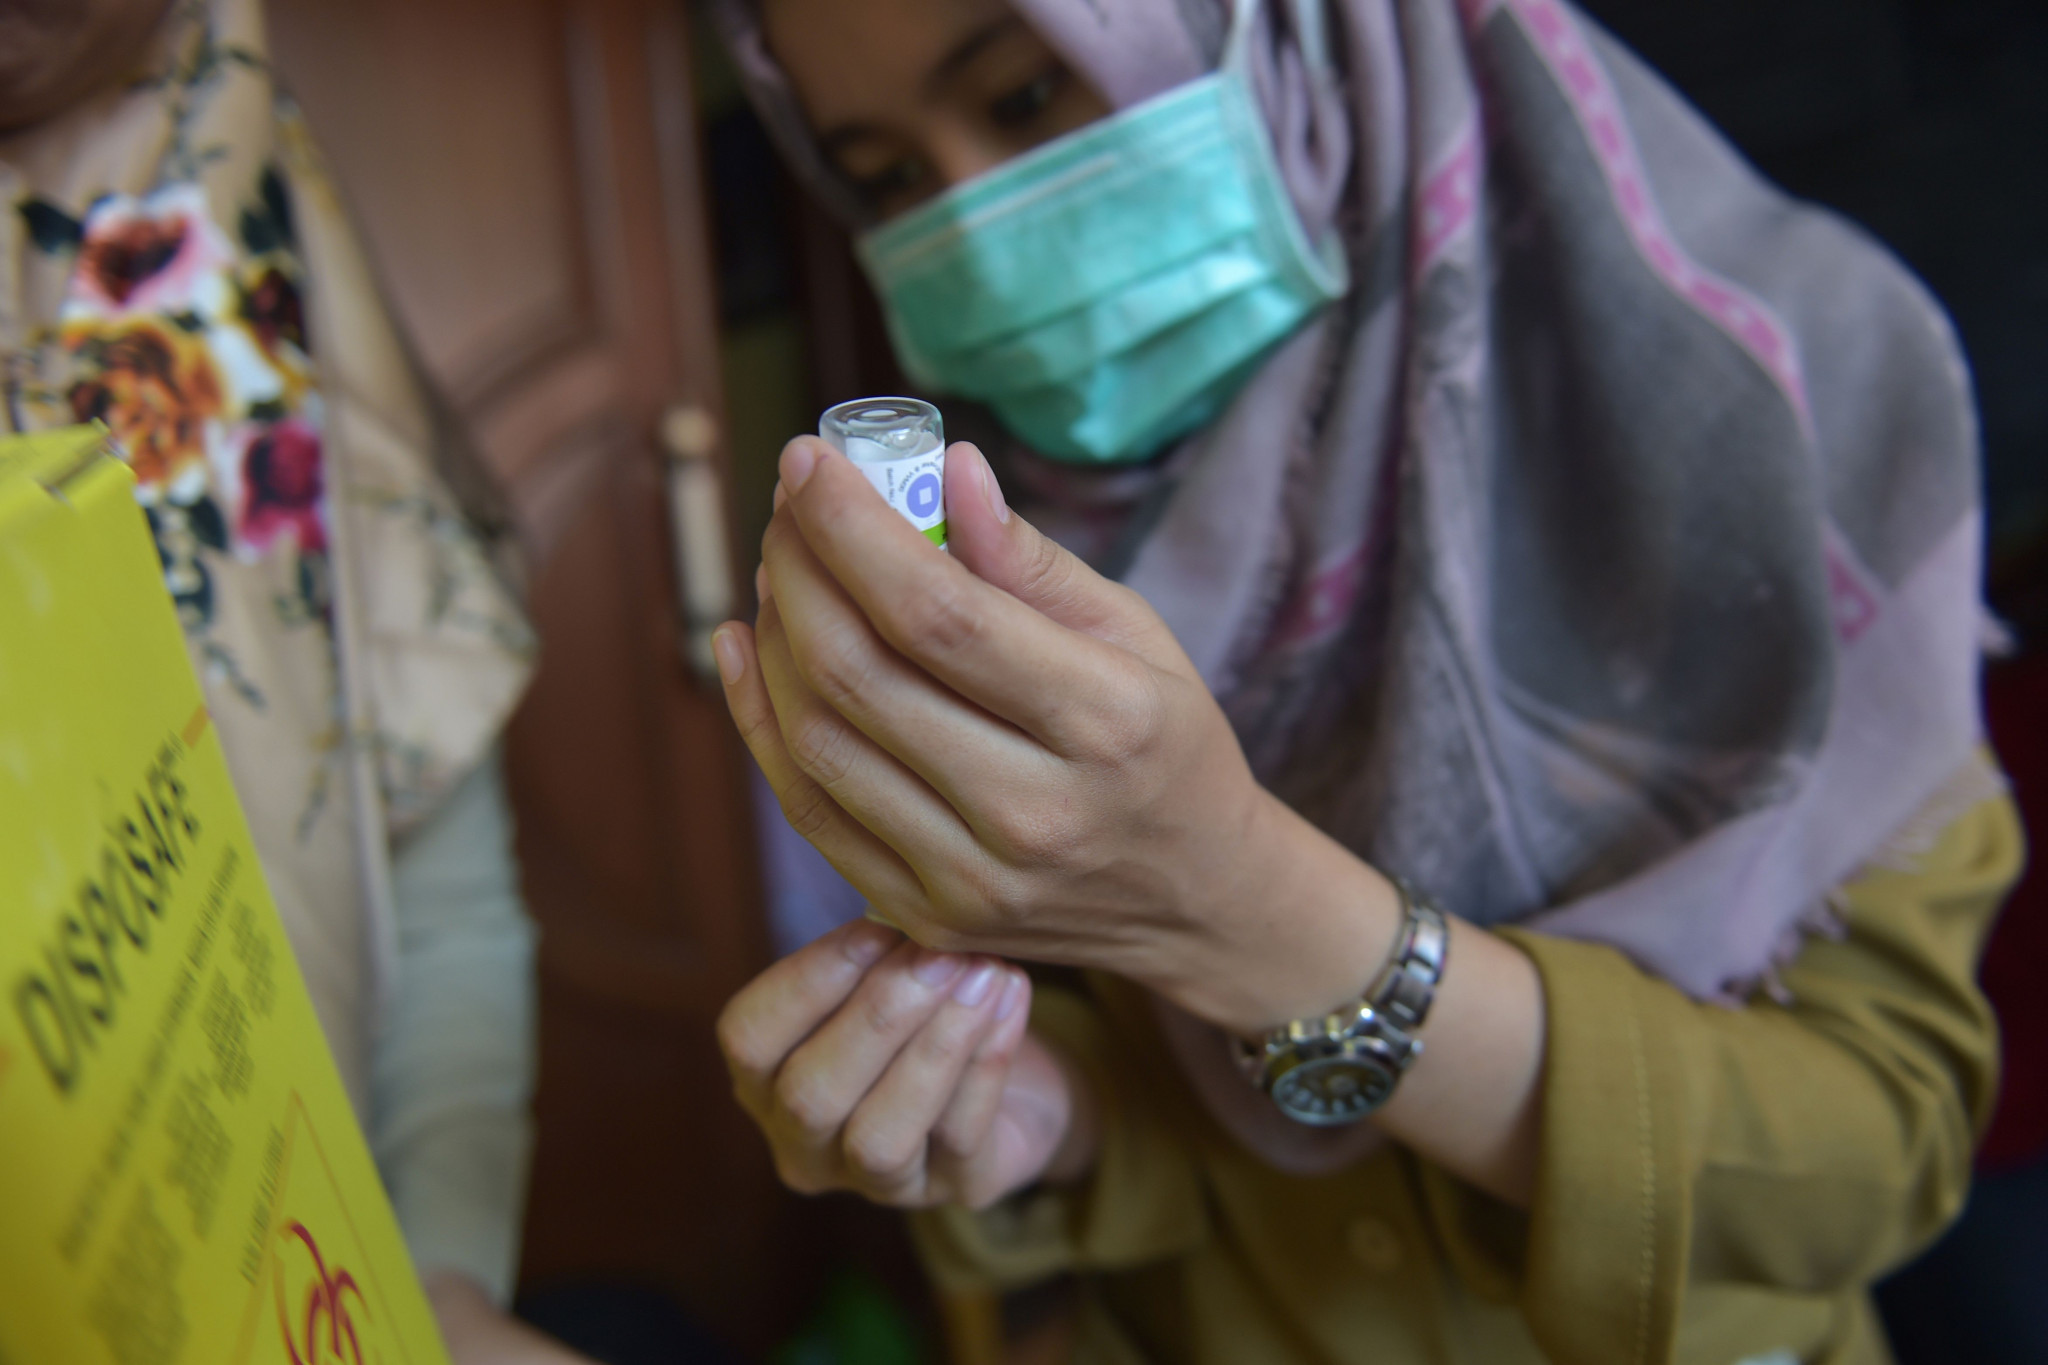 Immunisation programme launched in Jakarta after warning Asian Games faces diphtheria threat